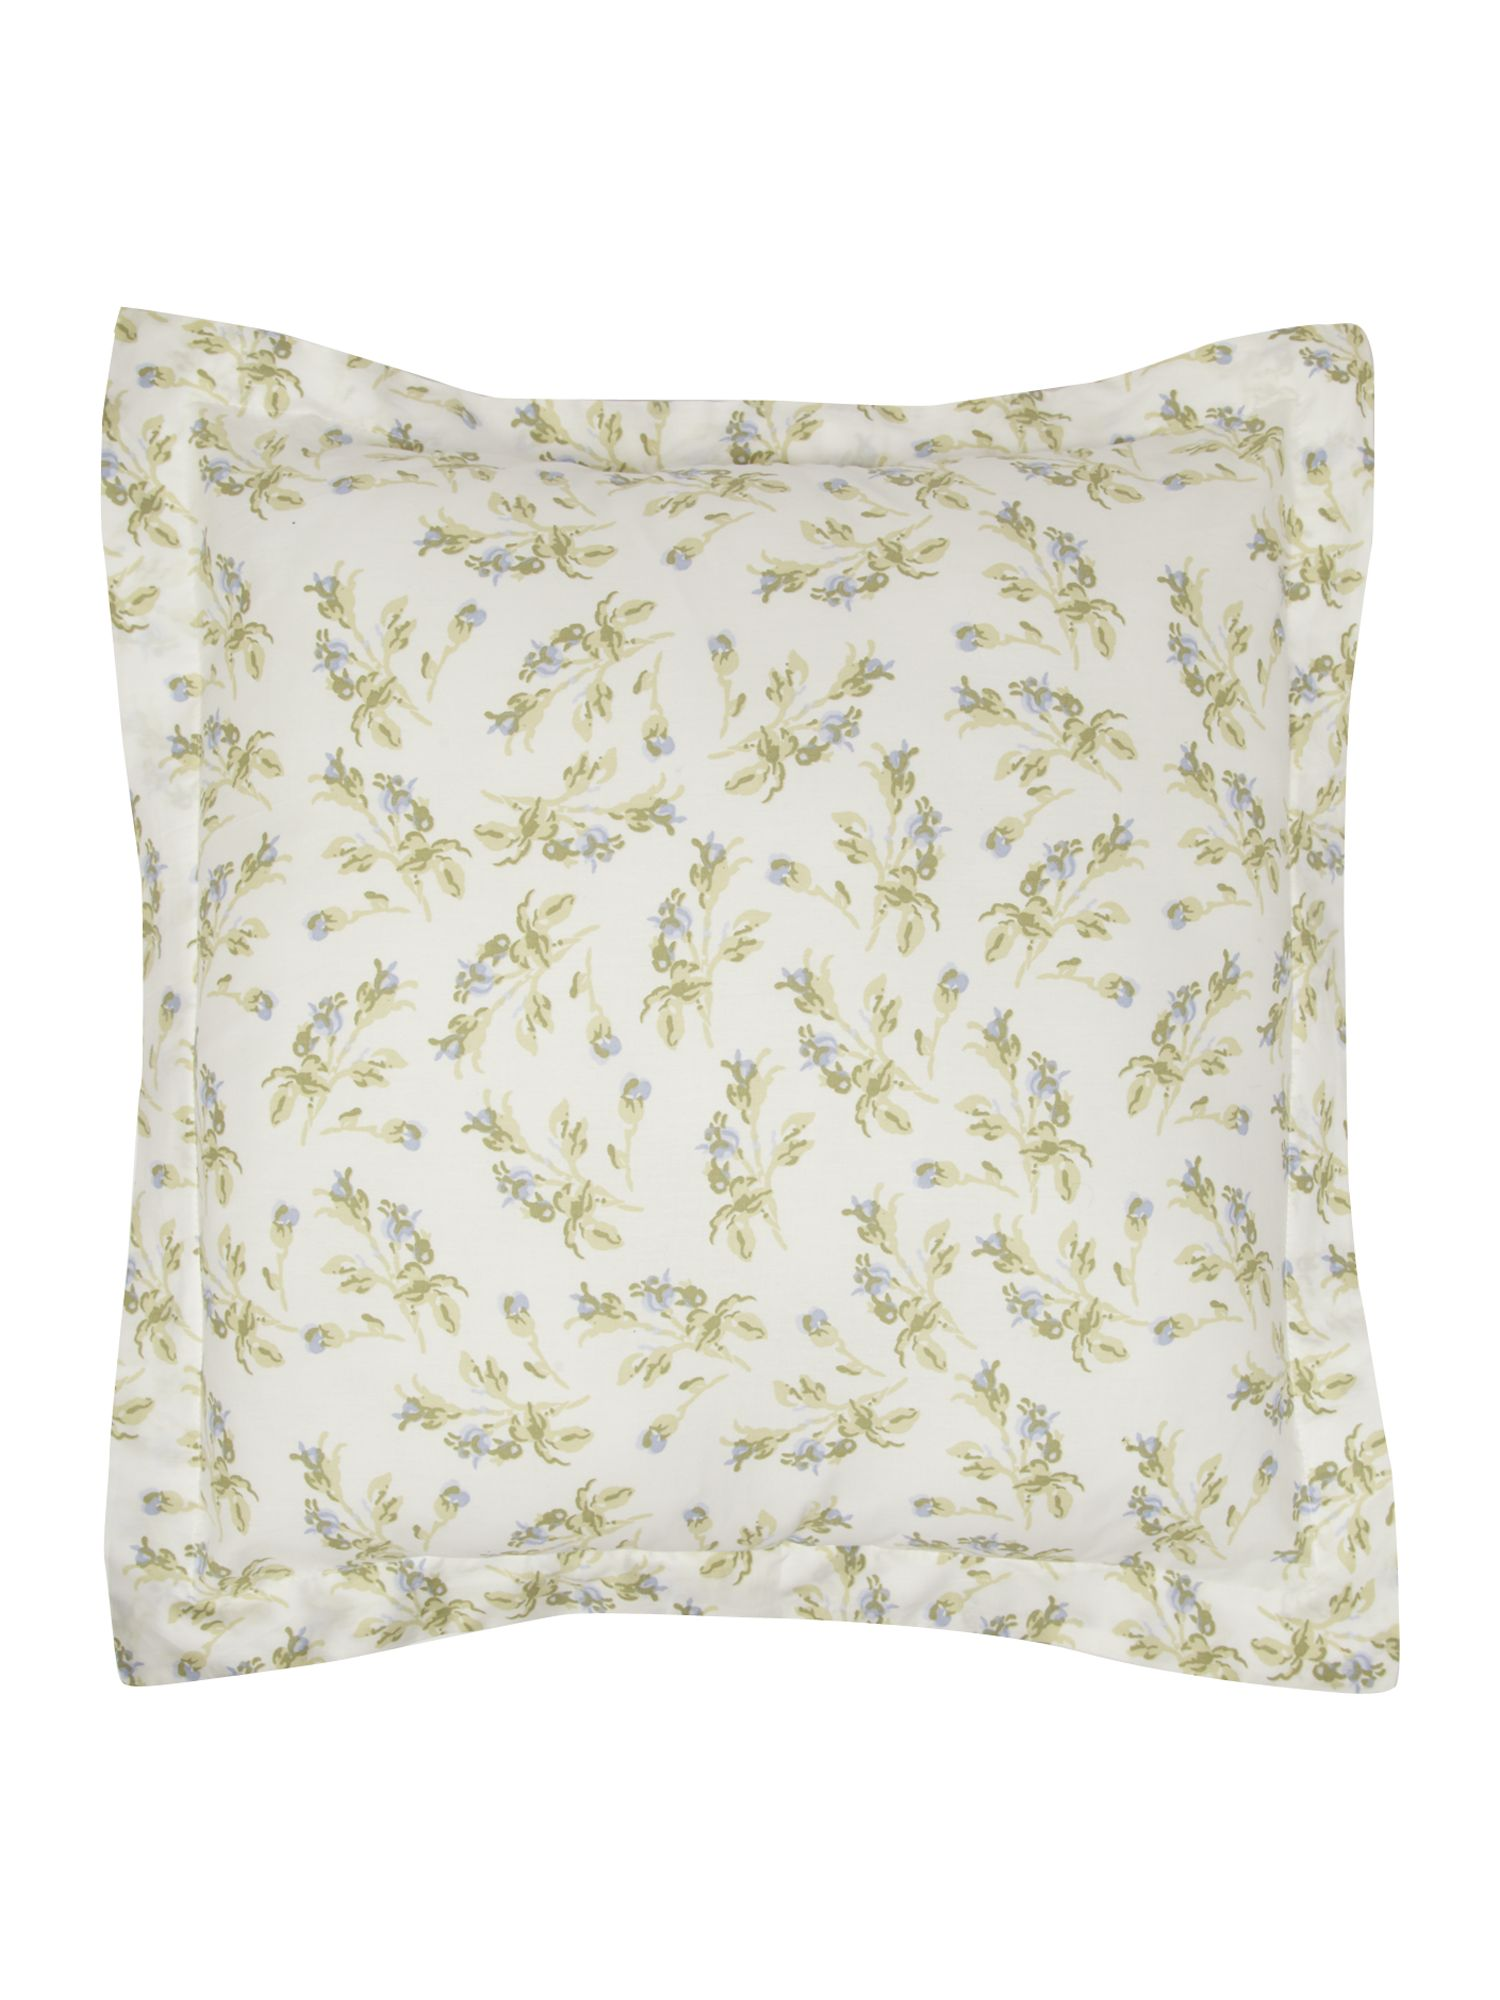 Henrietta cushion in lemon